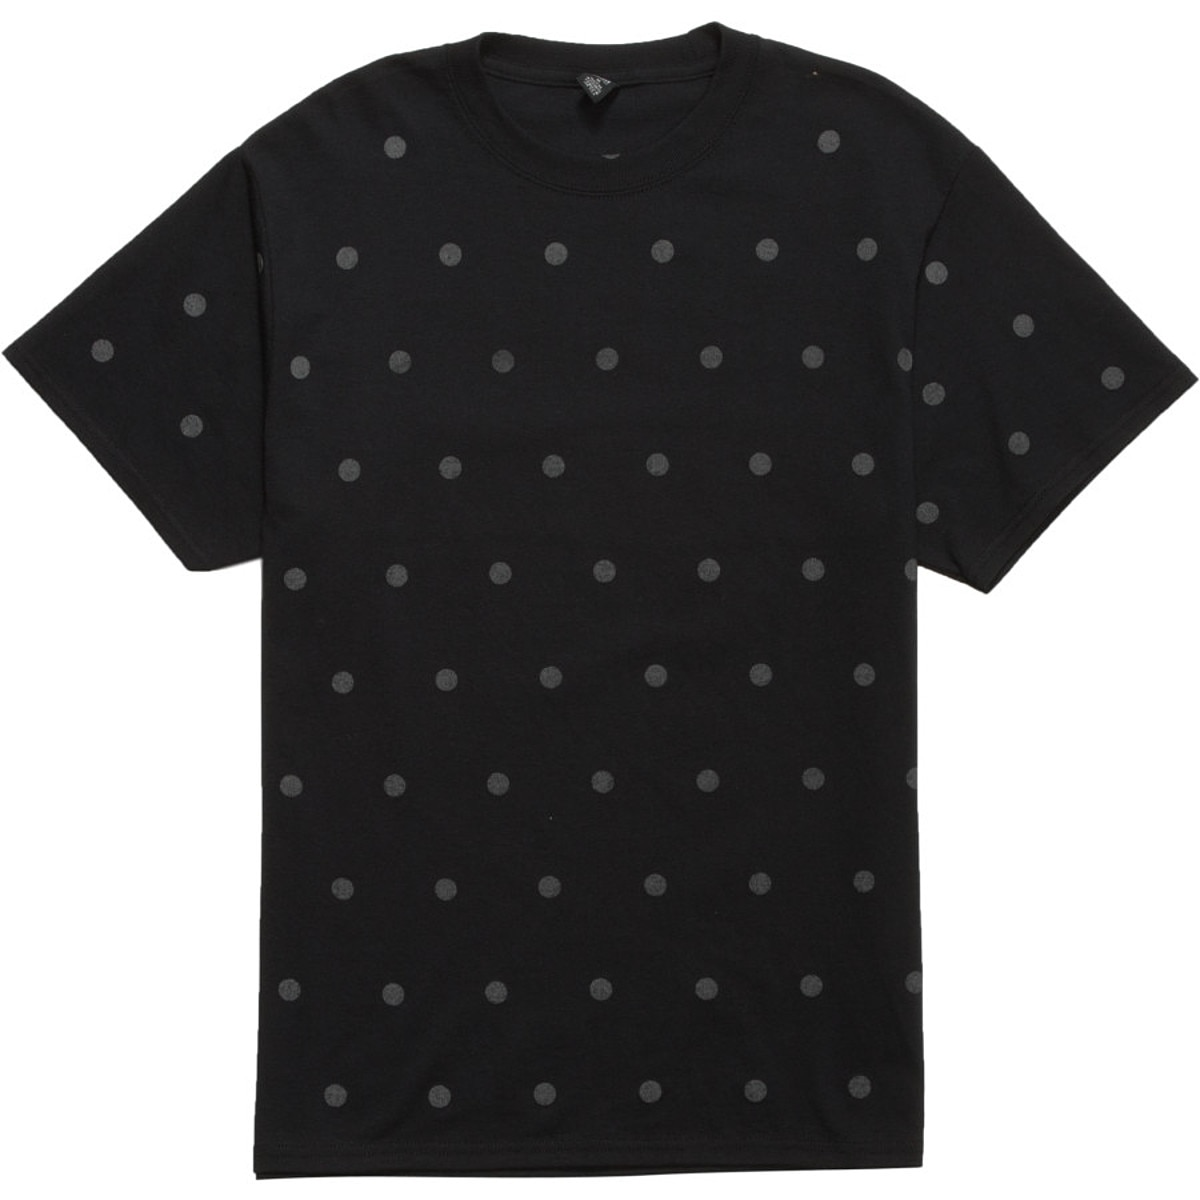 Icny polka dot t shirt short sleeve men 39 s for Mens polka dot shirt short sleeve